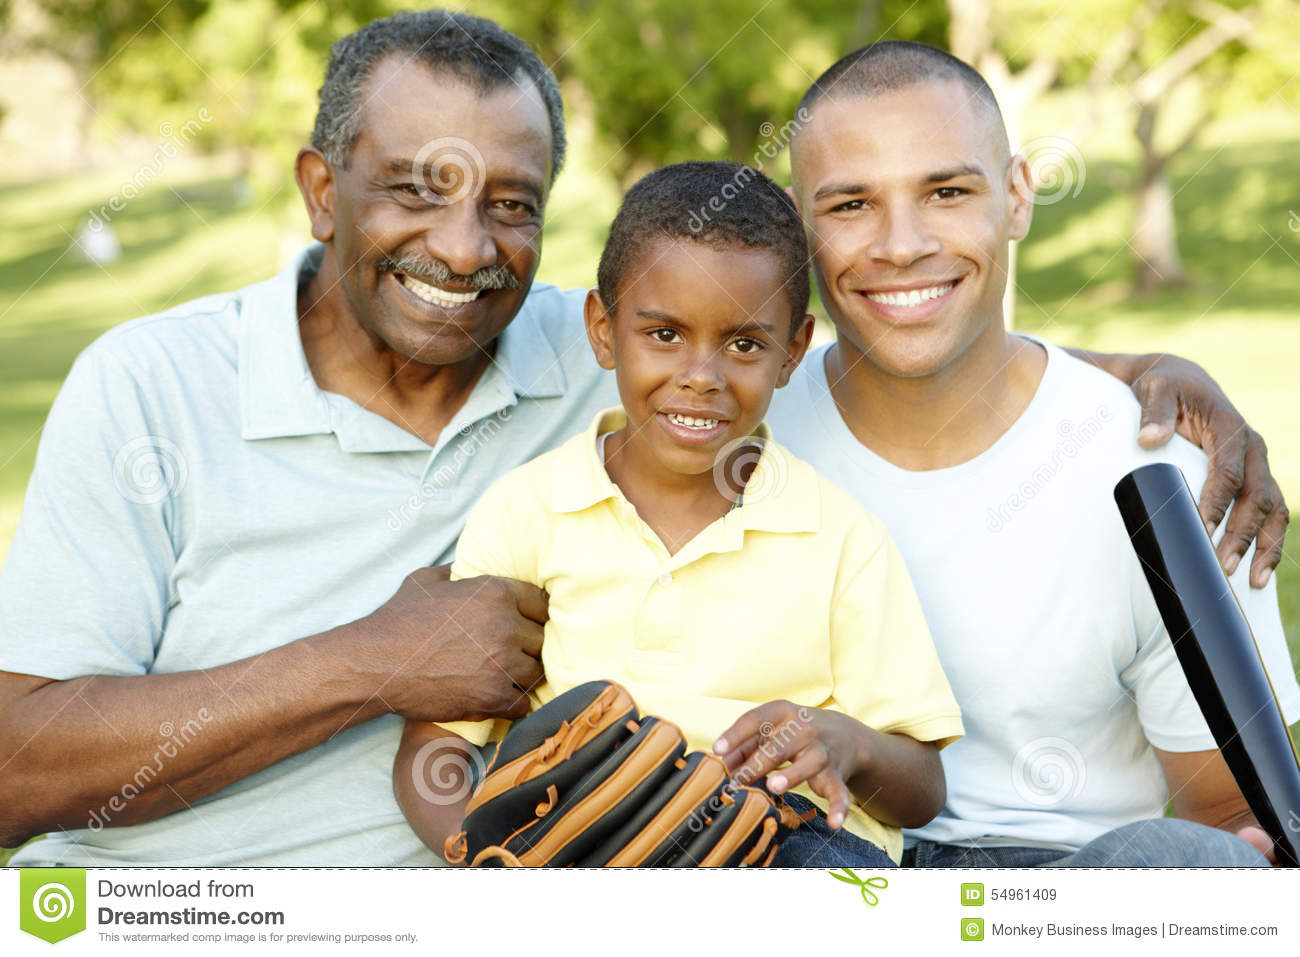 father and son relationship images african american